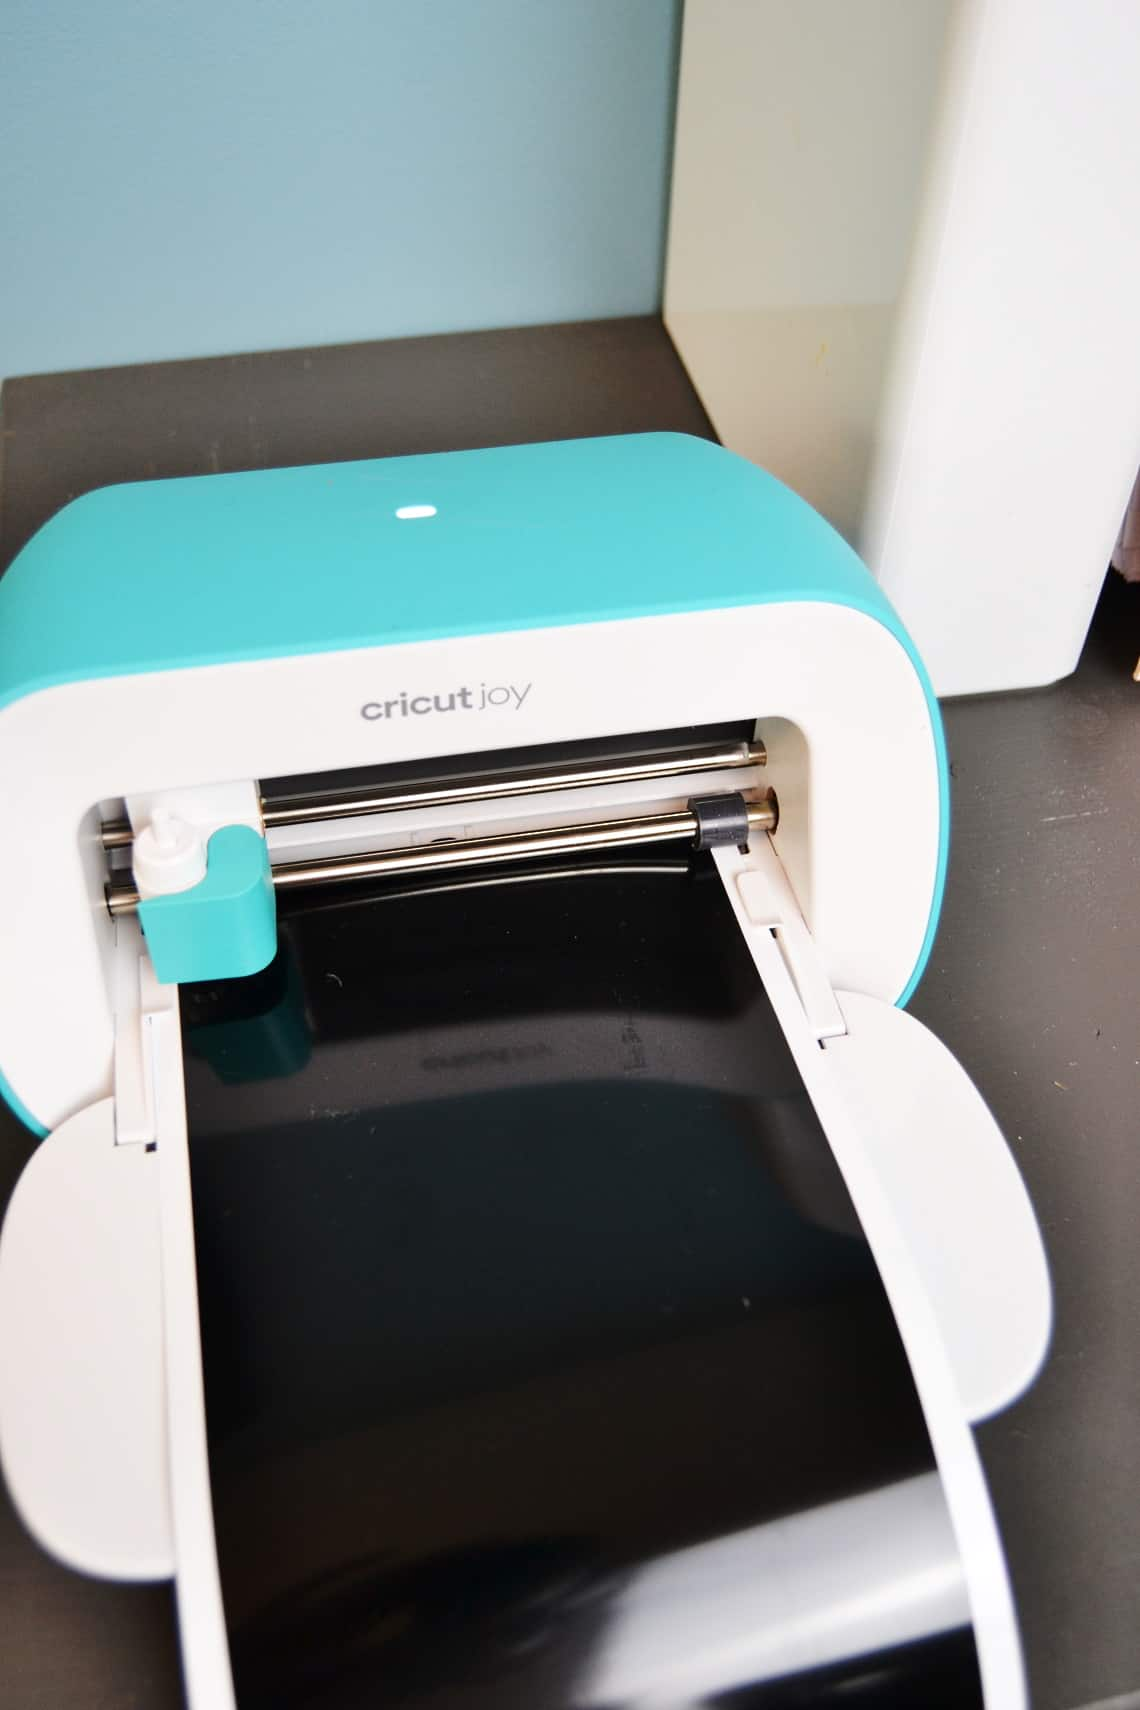 Cricut Joy cutting vinyl